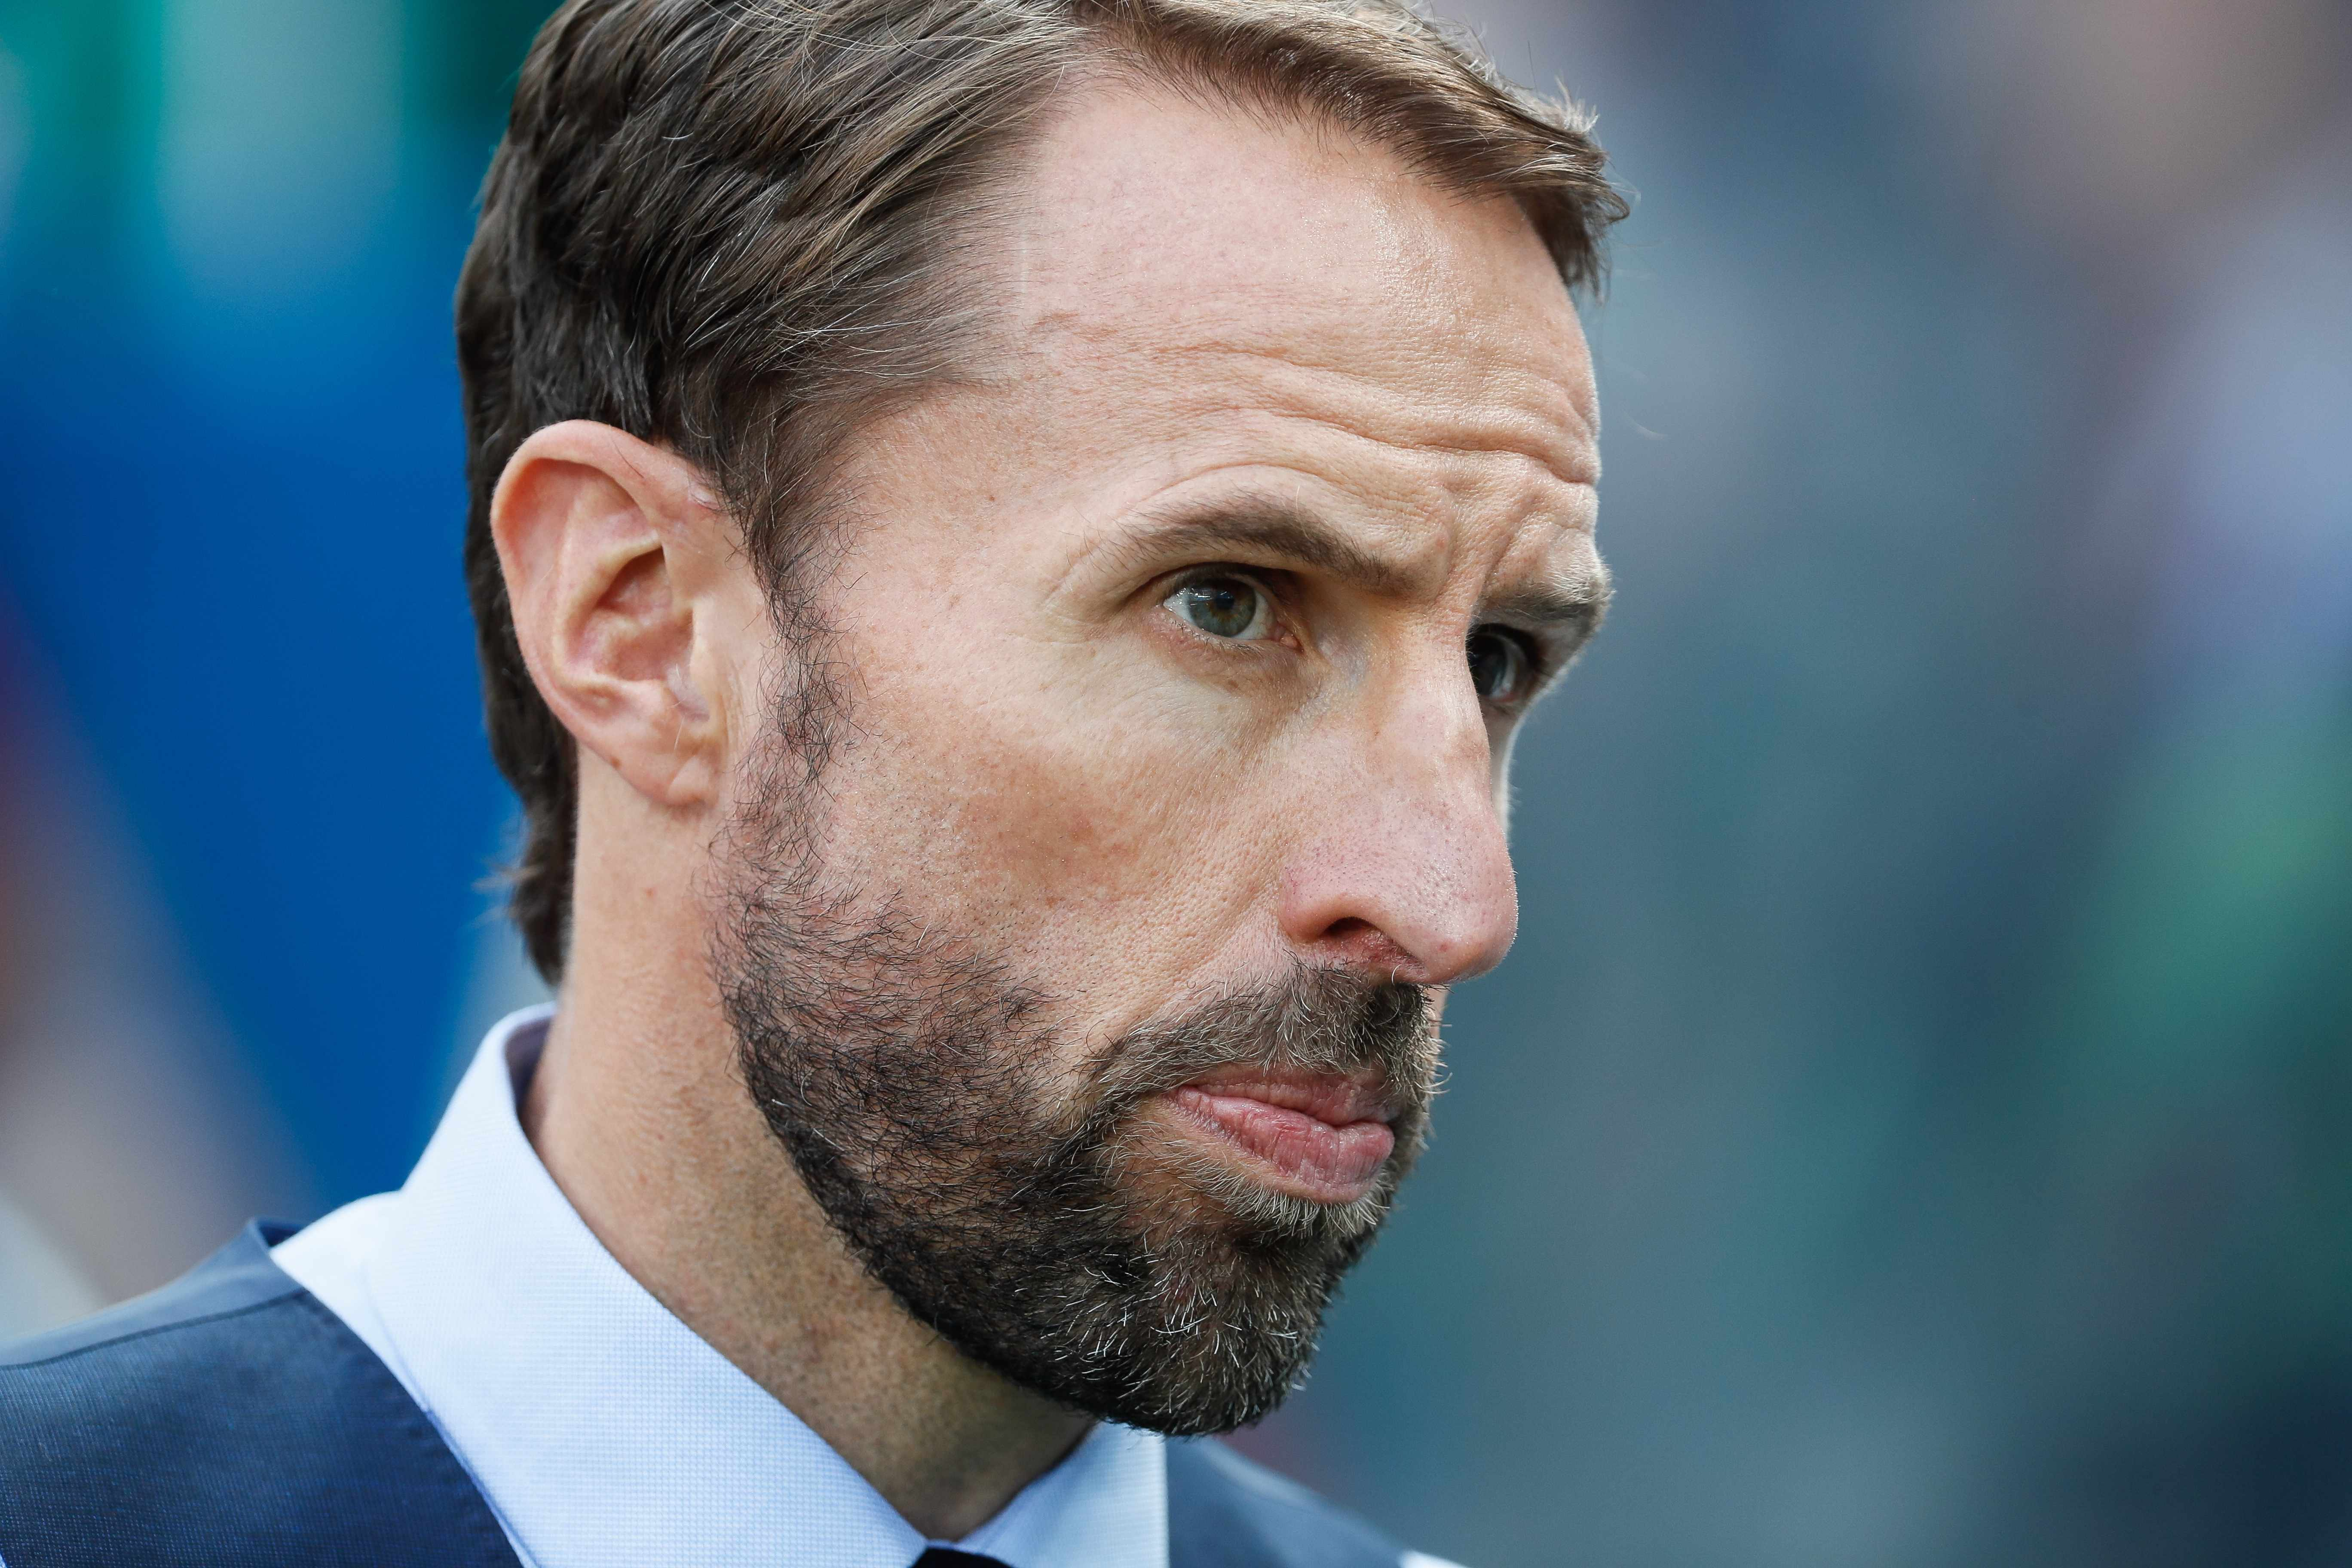 Gareth Southgate of England national team during the 2018 FIFA World Cup Russia group G match between England and Panama on June 24, 2018 at Nizhny Novgorod Stadium in Nizhny Novgorod, Russia. (Photo by Mike Kireev/NurPhoto via Getty Images)  Getty, TL